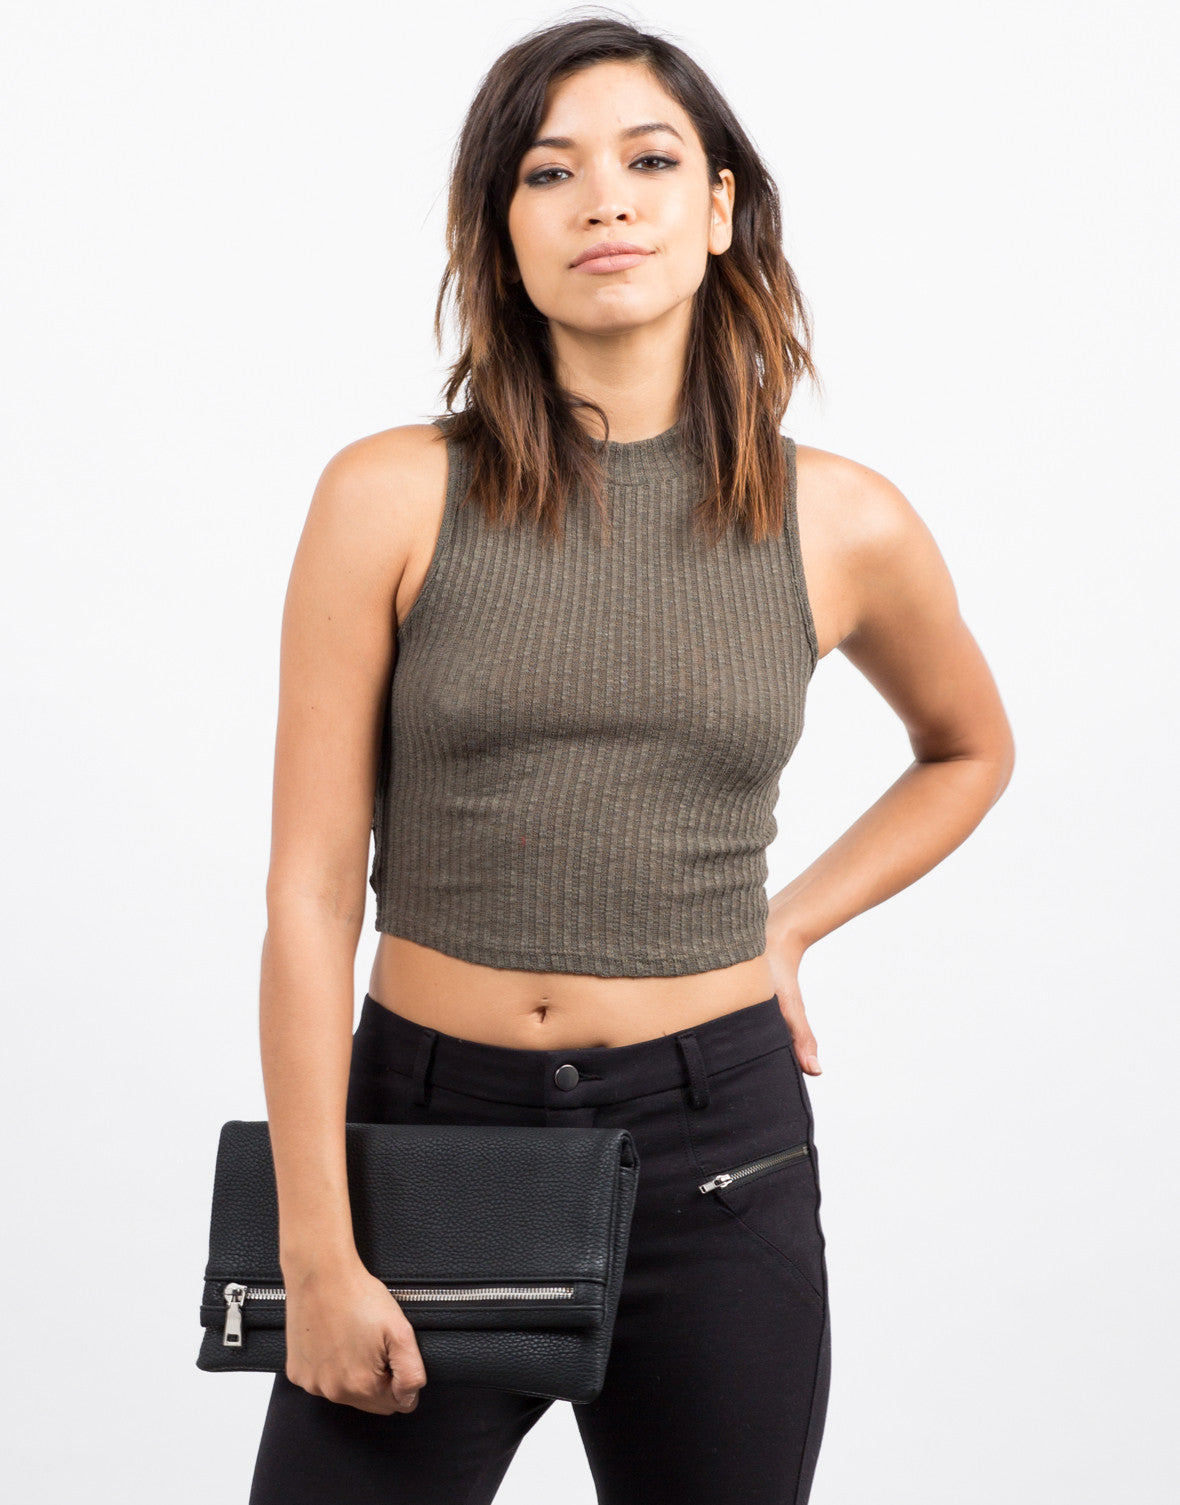 STYLE # In supremely soft pima cotton, our ribbed tank is a year-round essential for comfort and style. Scoop neck. Rated 5 out of 5 by Lady Jay from Tried and True I always buy these simple, cotton, plain tank tops. They always come in handy and wash well. Date published: